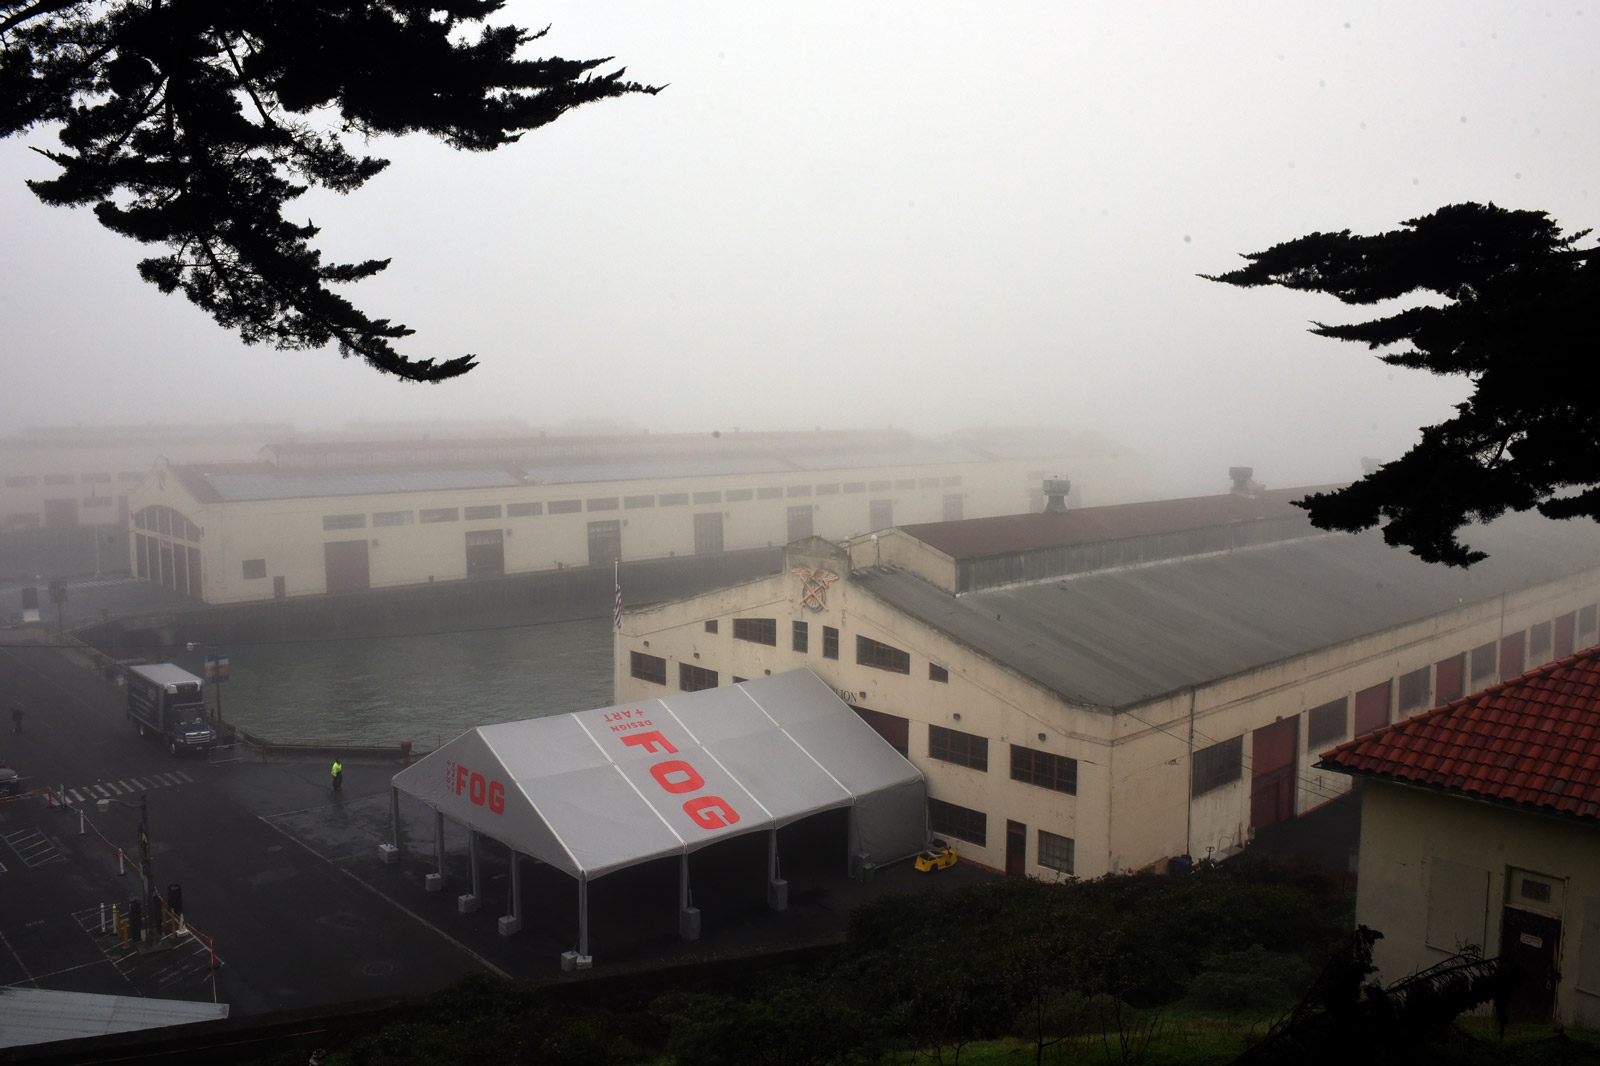 Last year's FOG Design+Art, fittingly, in the fog of Fort Mason.